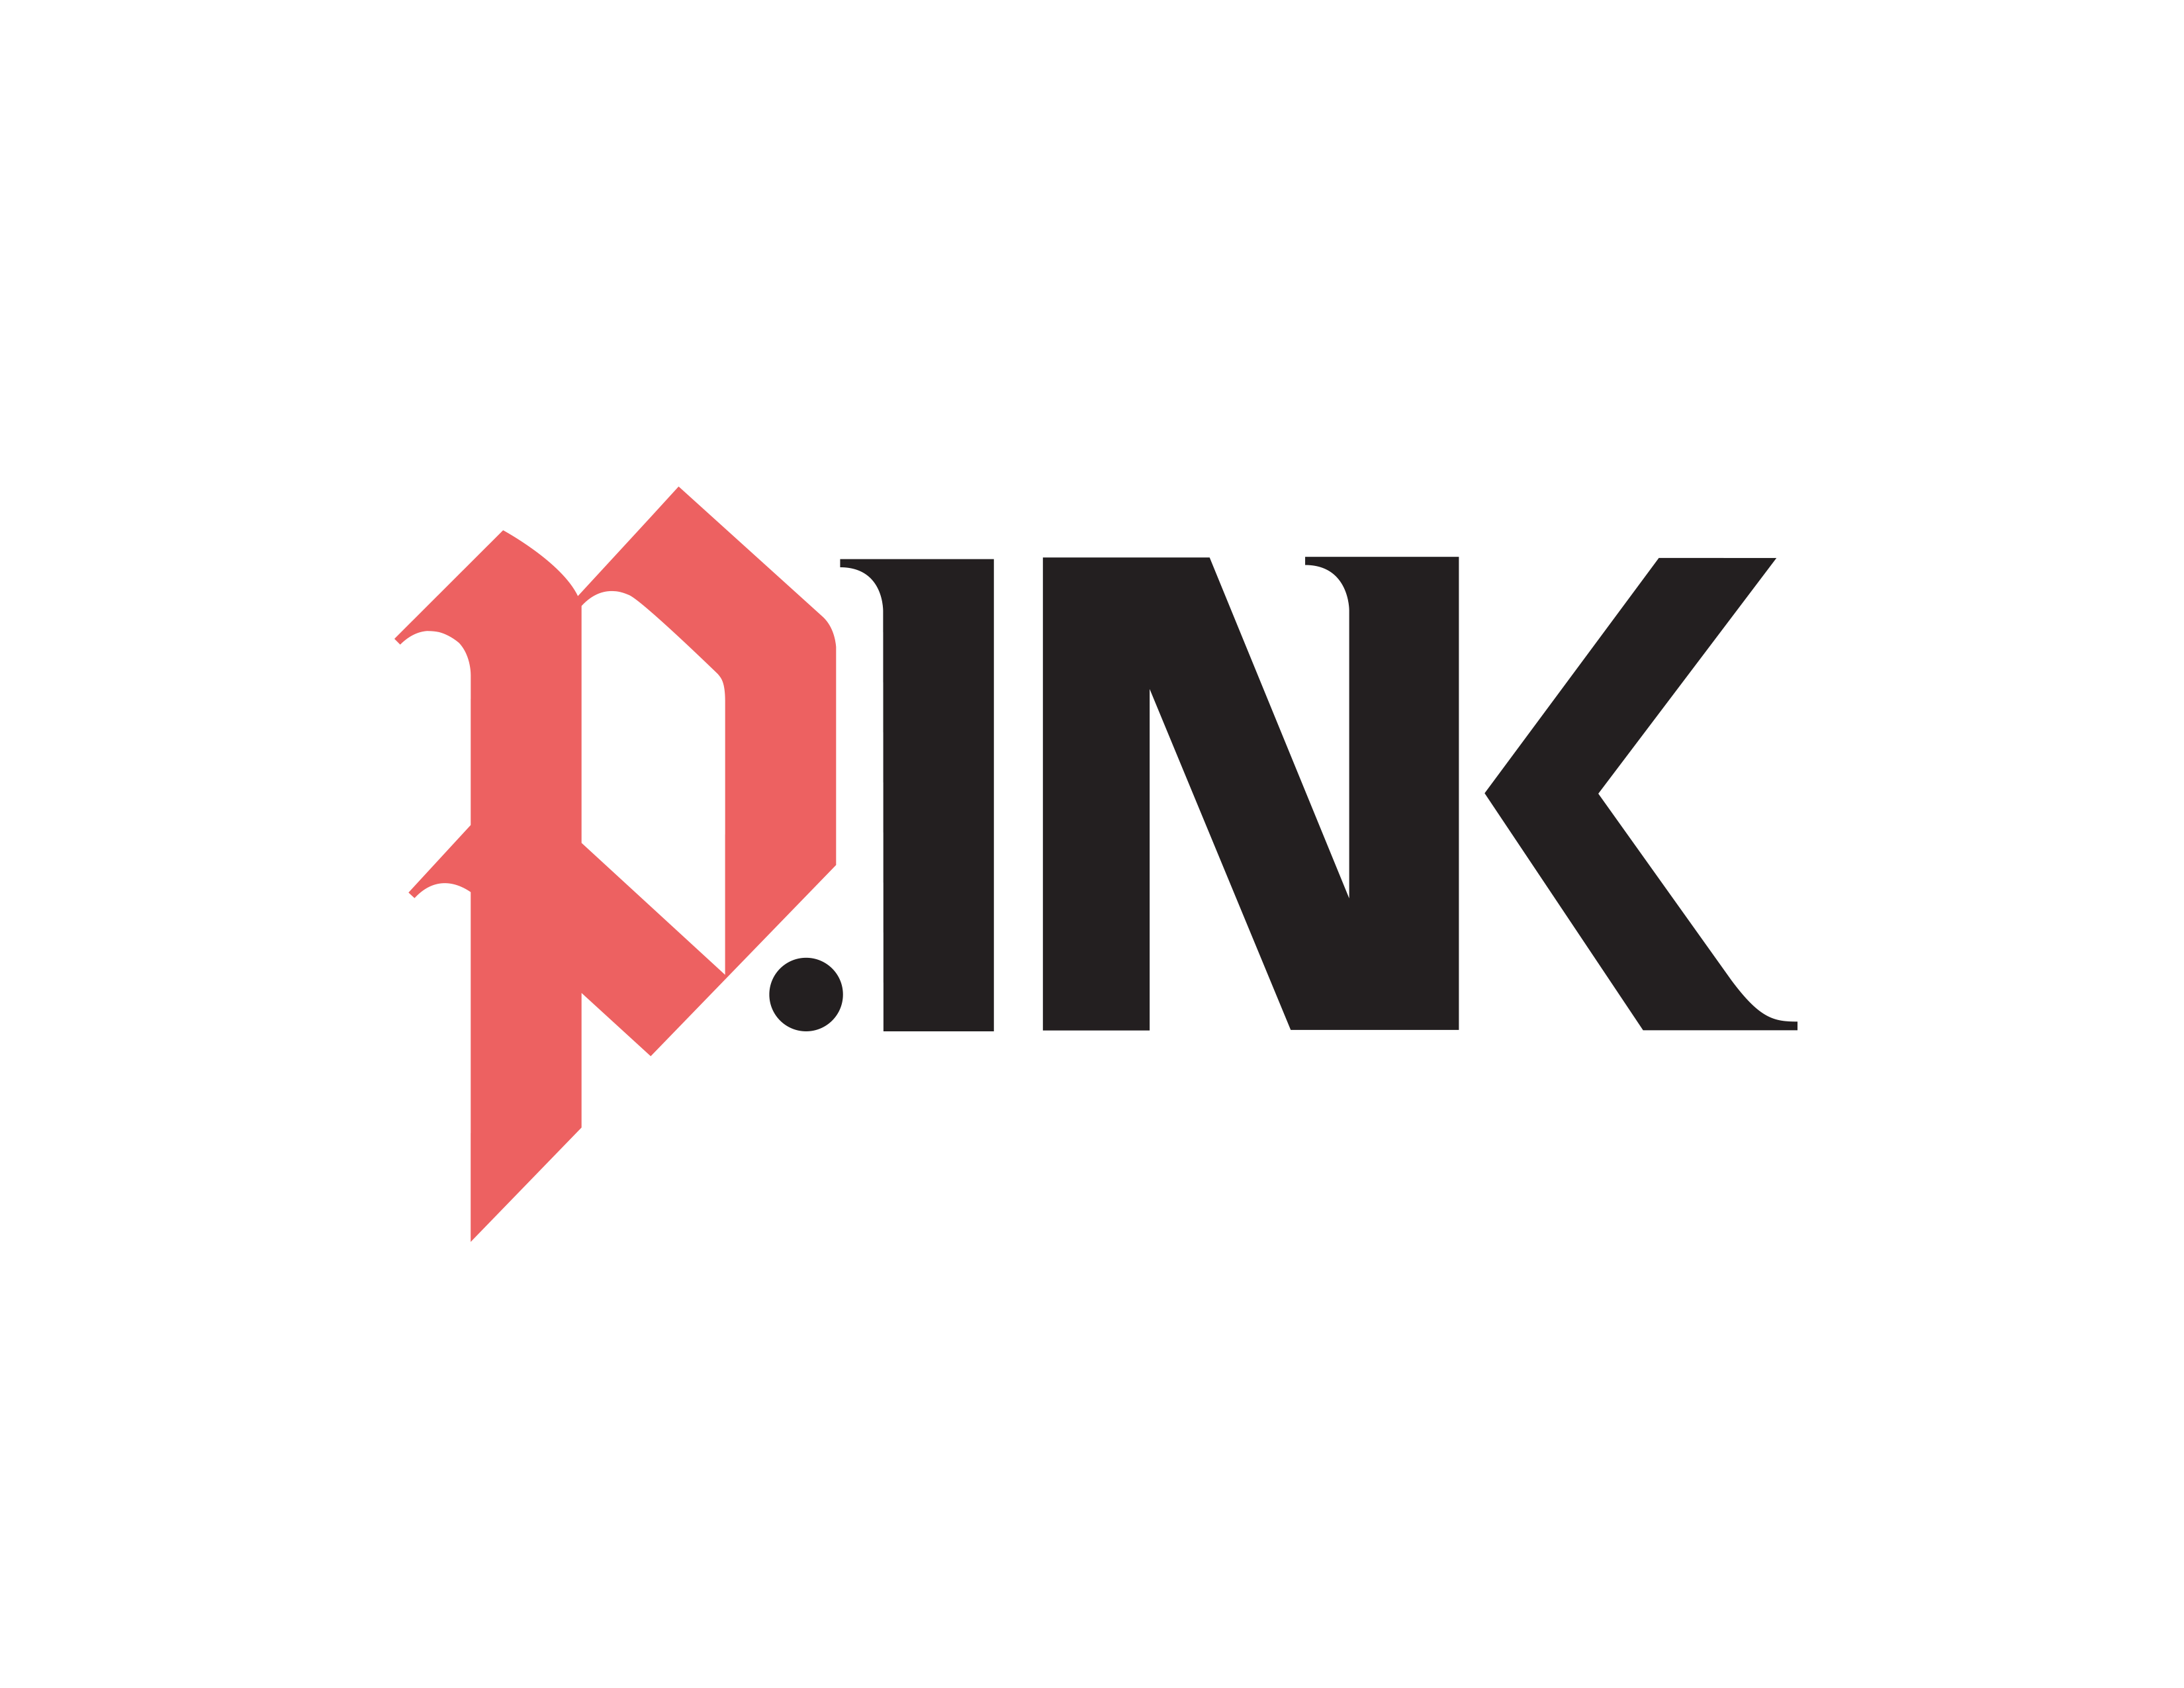 P.INK—don't let breast cancer leave the last mark Logo